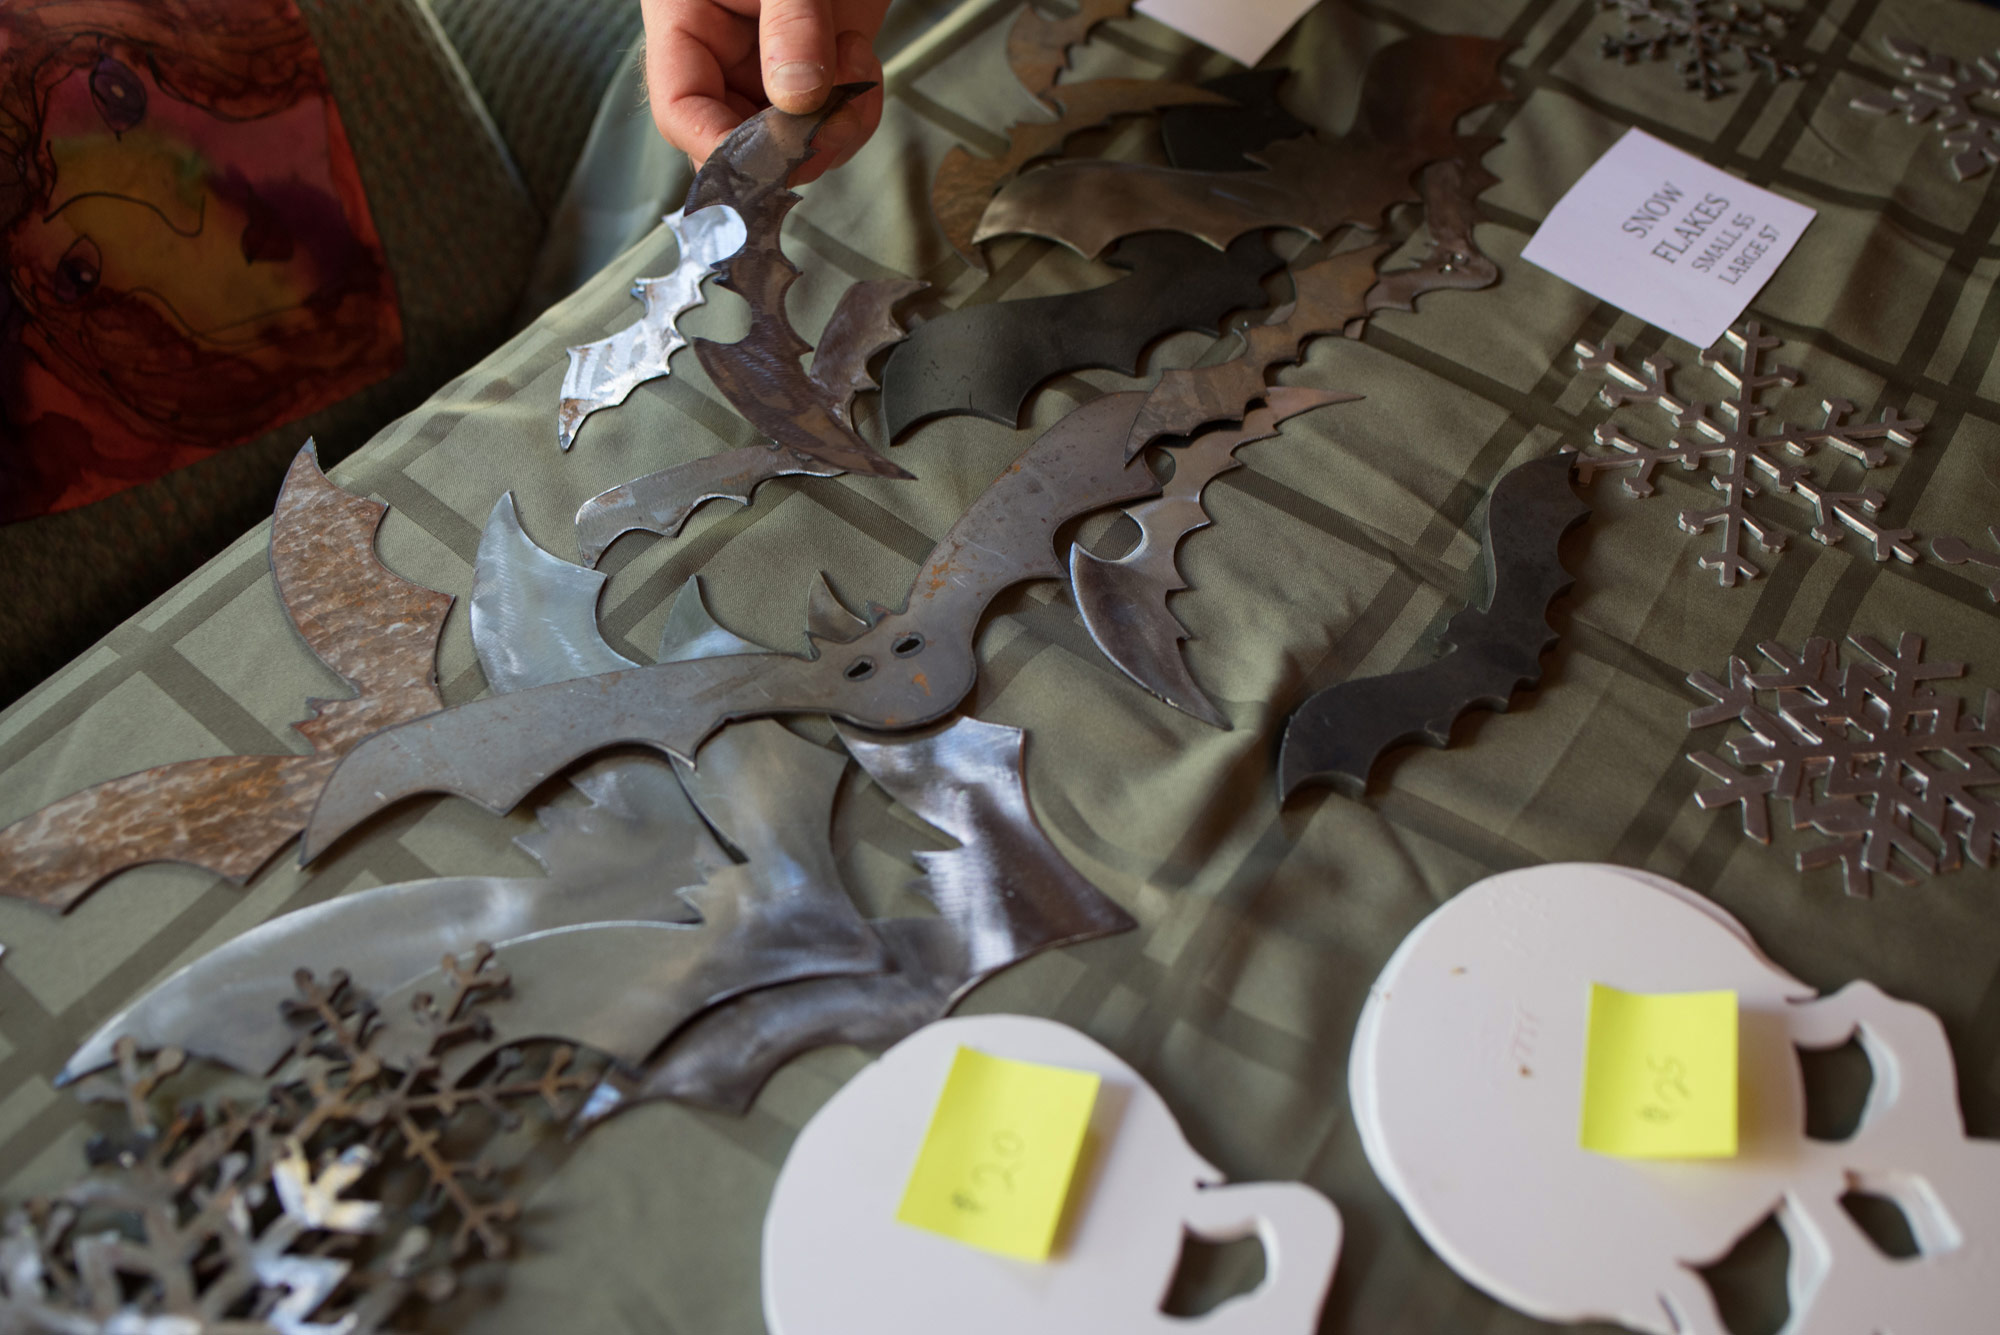 A variety of snowflakes, skulls & bats were scattered across Robert Hickler's table...